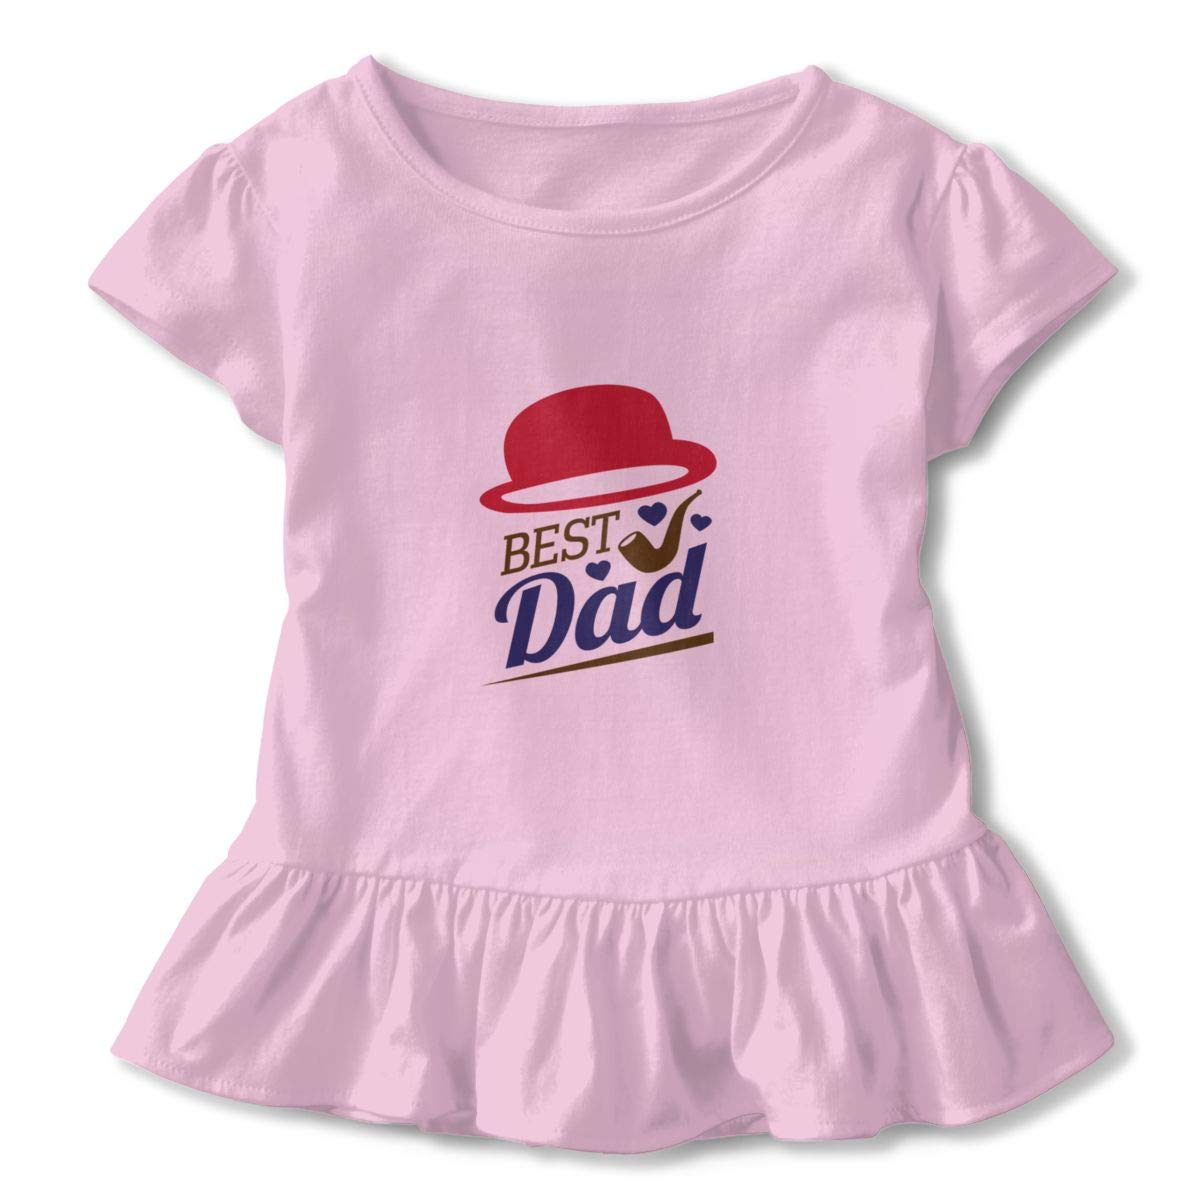 Happy Fathers Day Best Dad Pink 2-6 T Toddler Baby Girls 100/% Cotton Short Sleeve T Shirt Top Outfits Tee Clothes